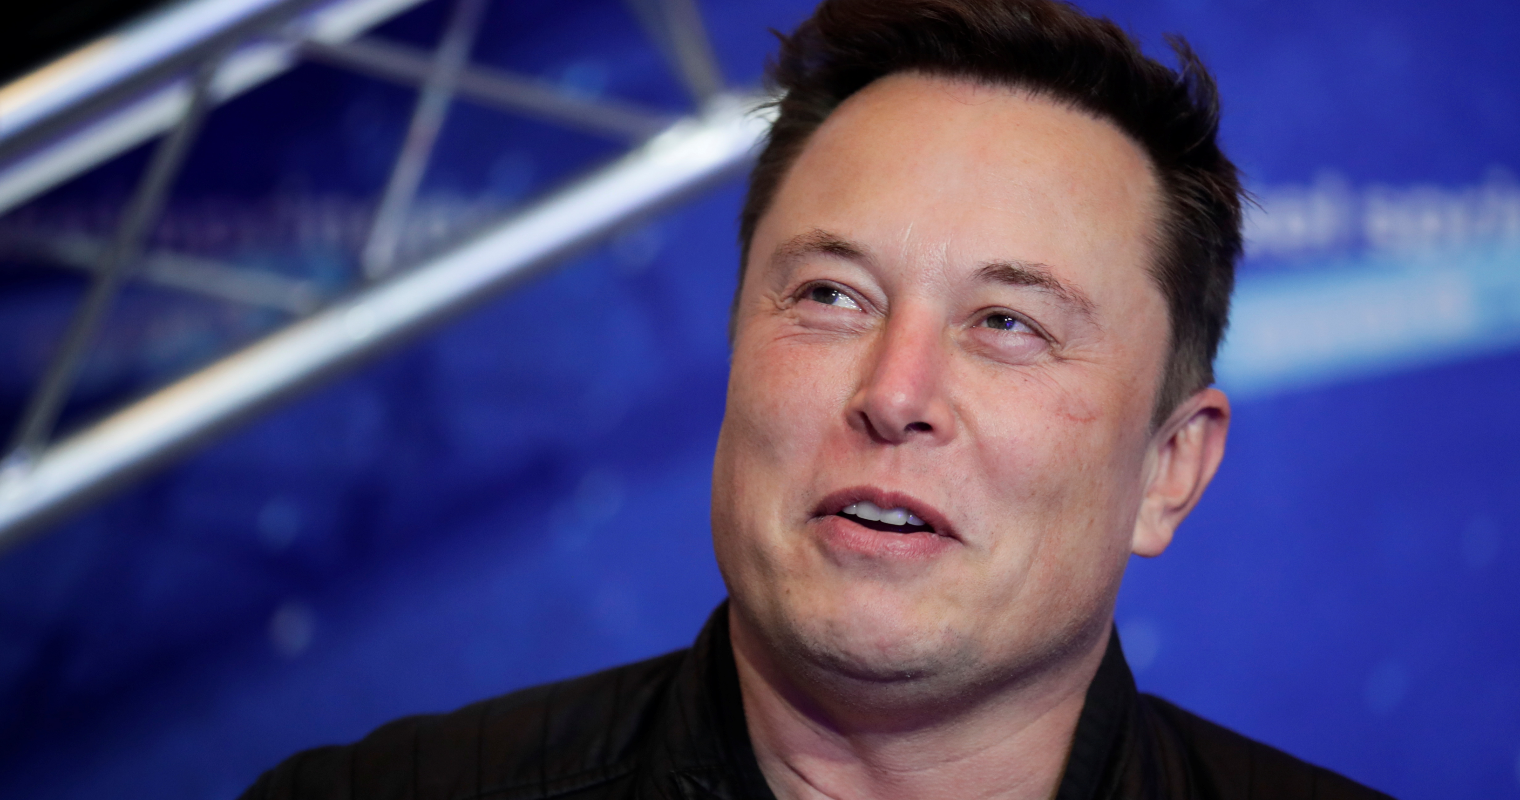 SpaceX Starship SN8 launch ends in fiery explosion, but Elon Musk is still over the moon